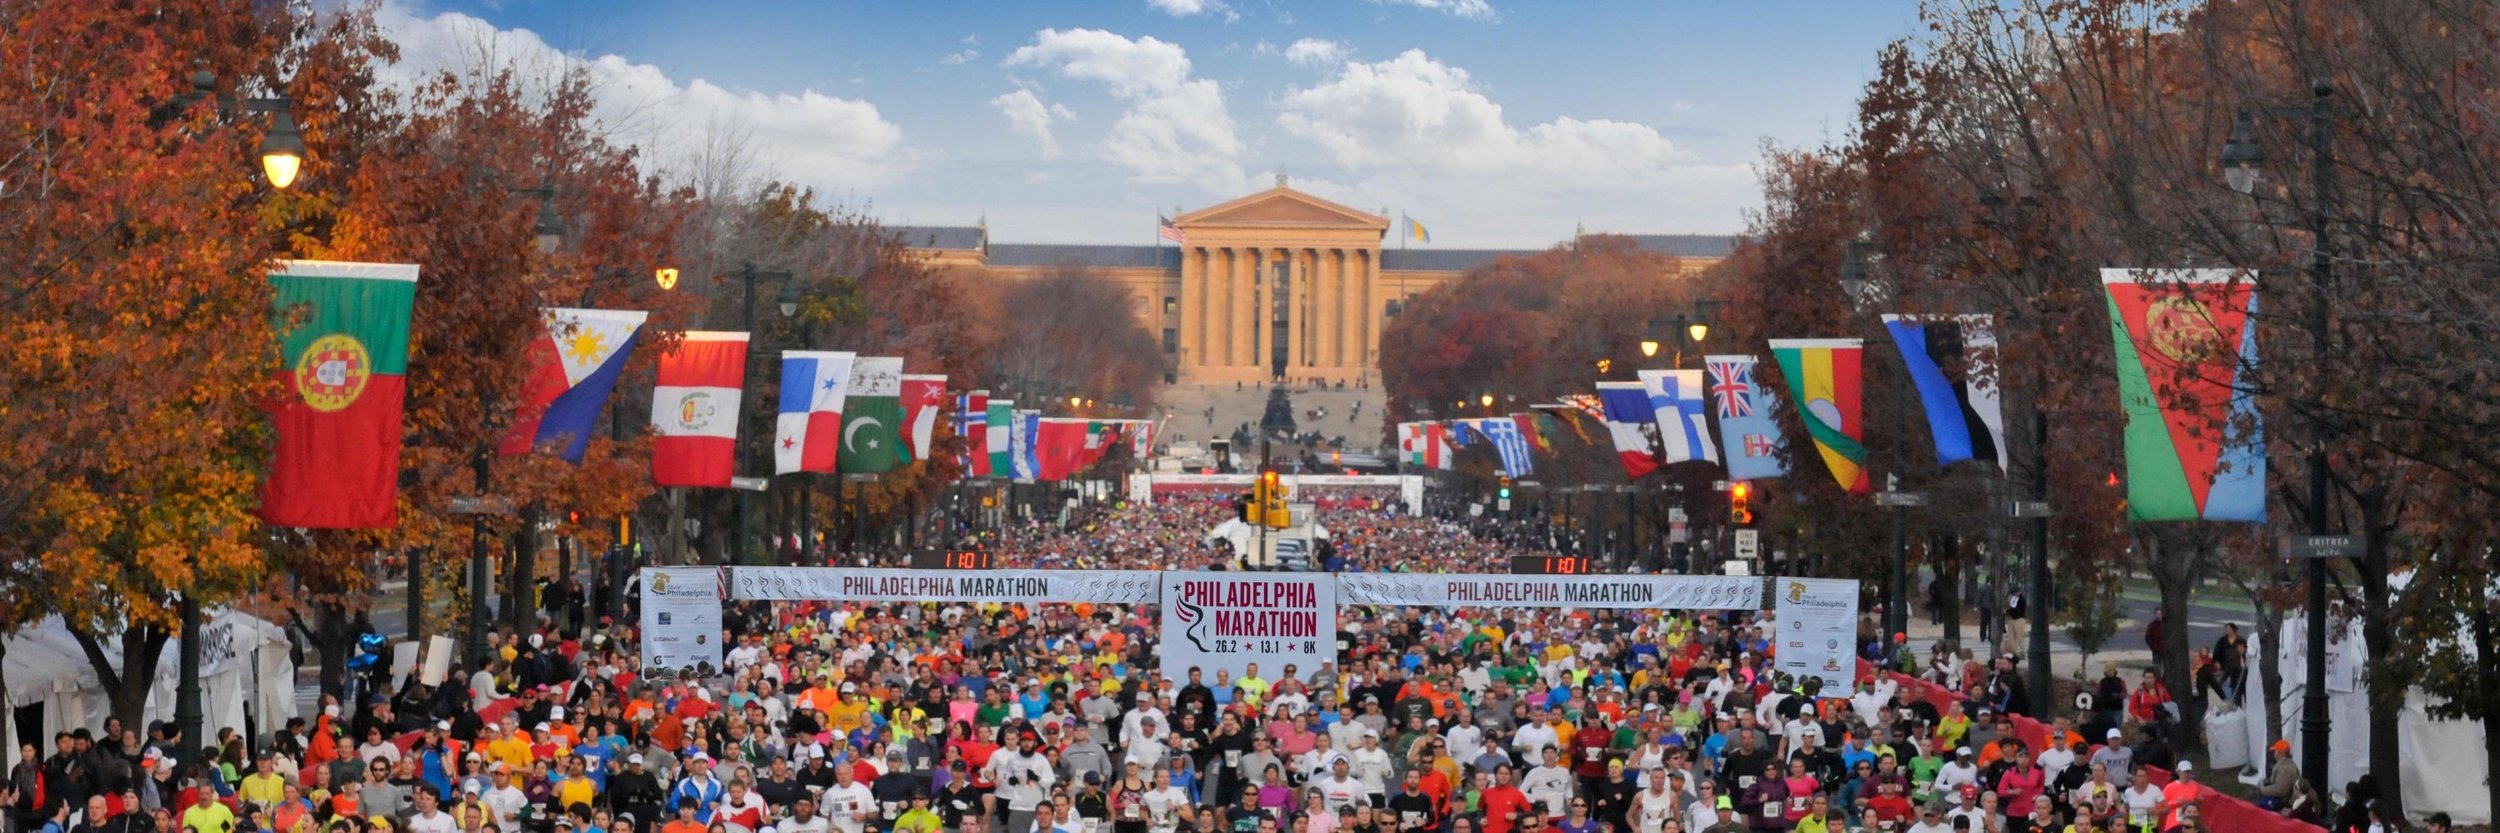 Destination Race: Philadelphia 8k, Half or Full Marathon   Every year the Rhode Runner Running Club takes a trip to an out of town race. The Philly Marathon, half and 8k is an awesome event that takes place on November 22nd through the 24th. We're gonna have a blast. We guarantee it.